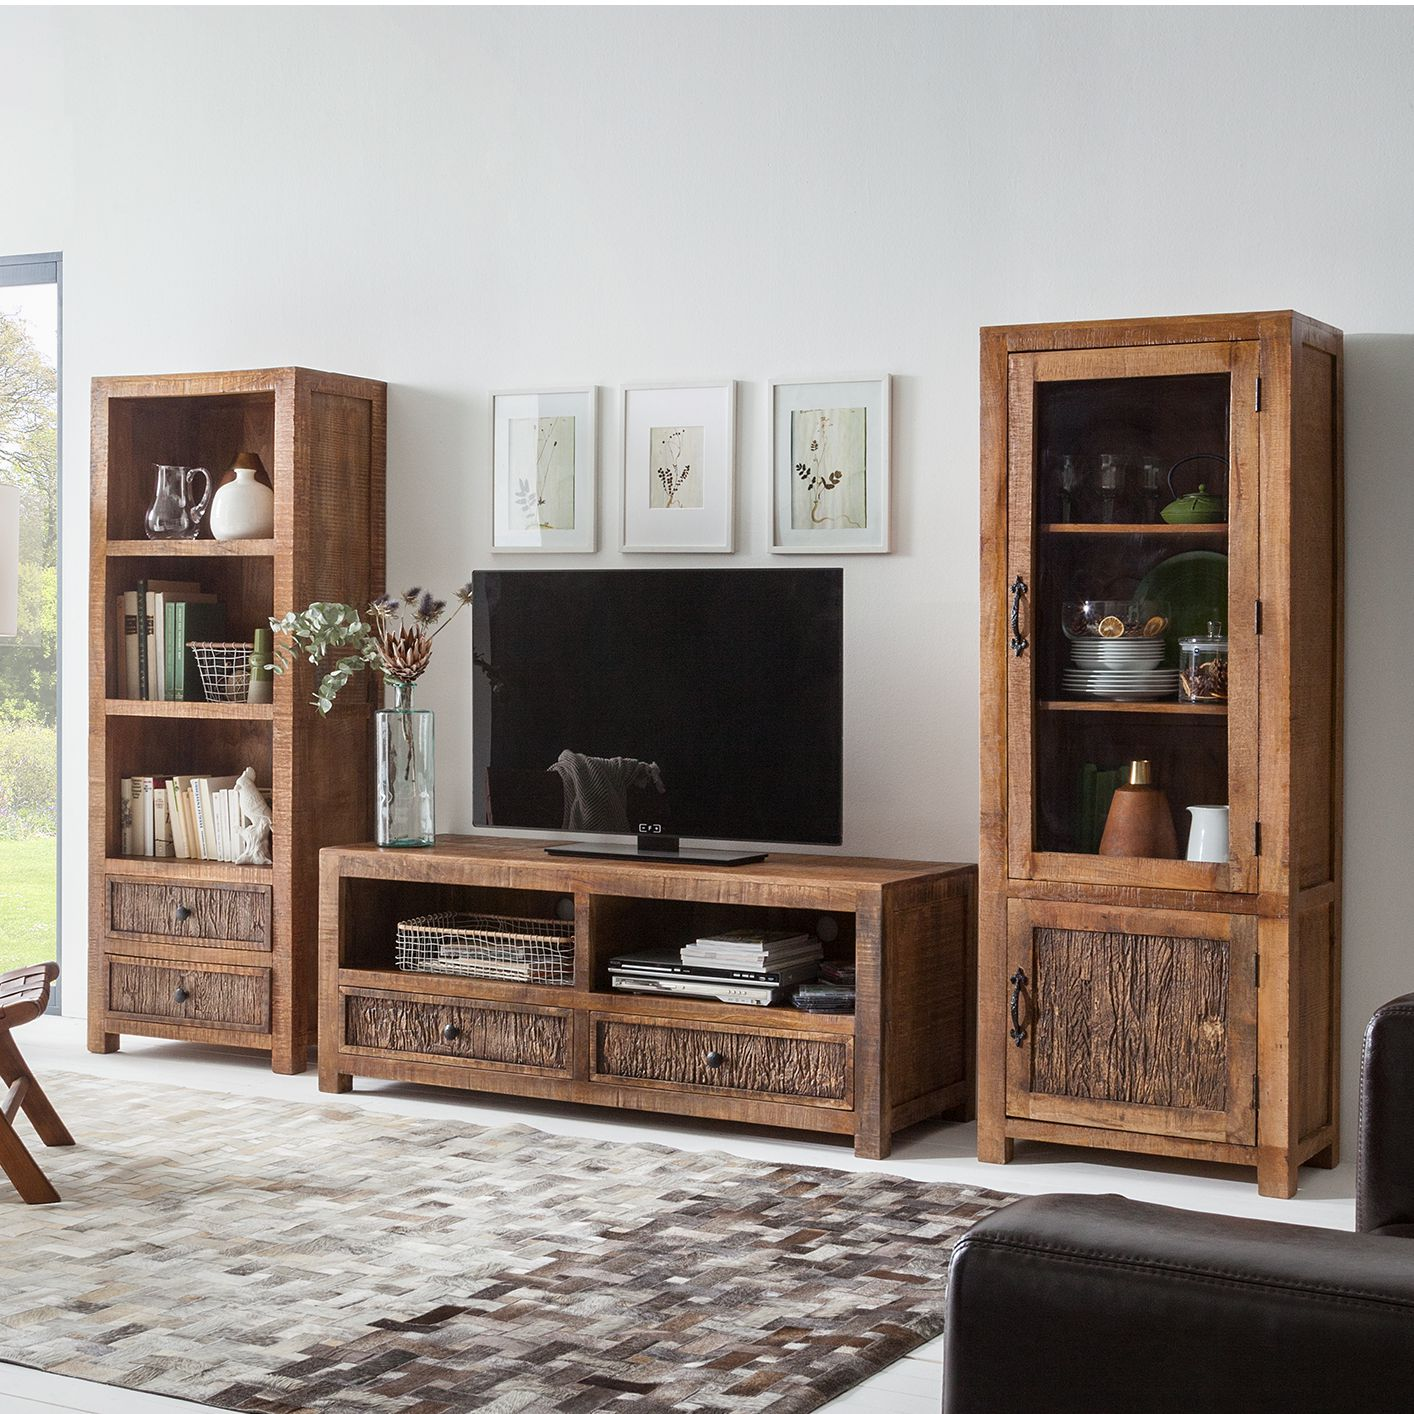 20 sparen wohnwand sternew 3 teilig nur cherry m bel home24. Black Bedroom Furniture Sets. Home Design Ideas